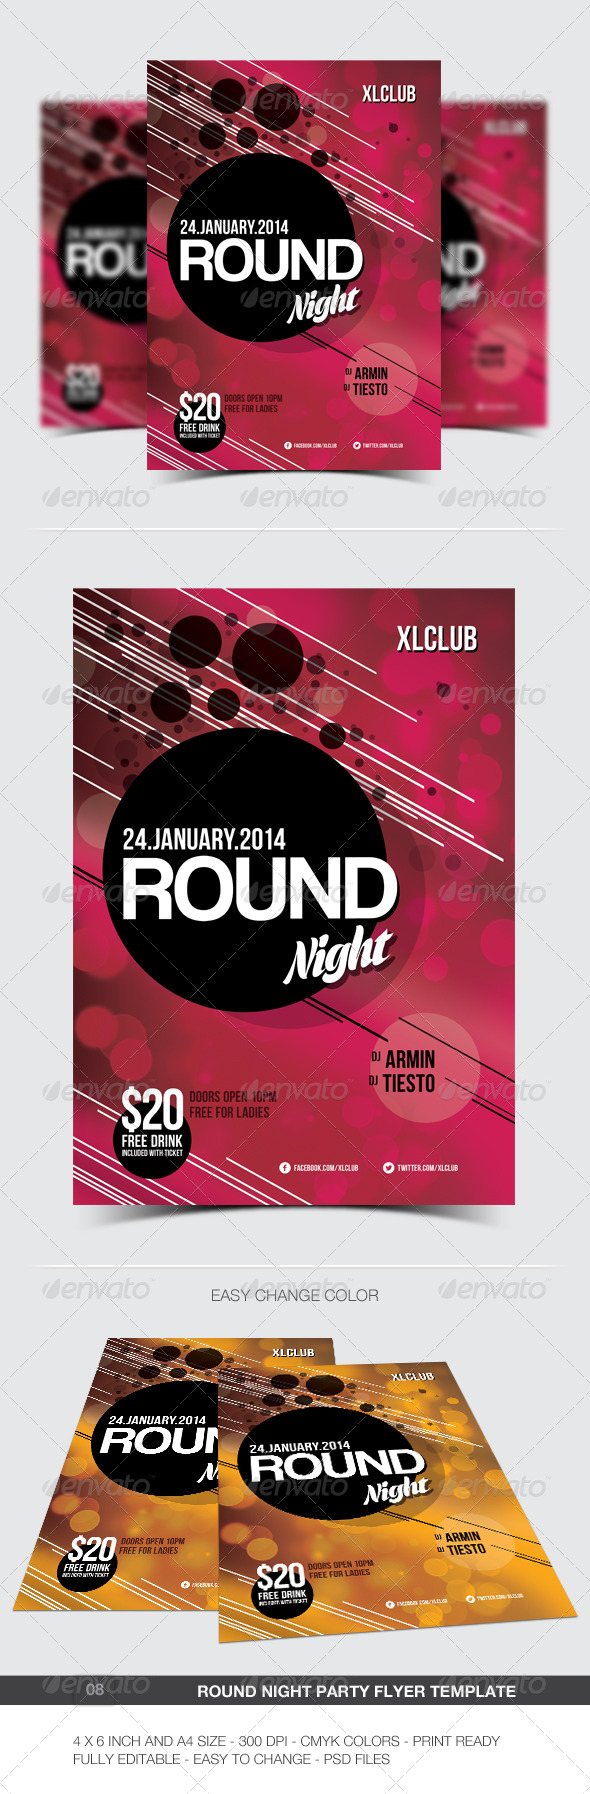 GraphicRiver Round Night Party Flyer Poster 08 6885351